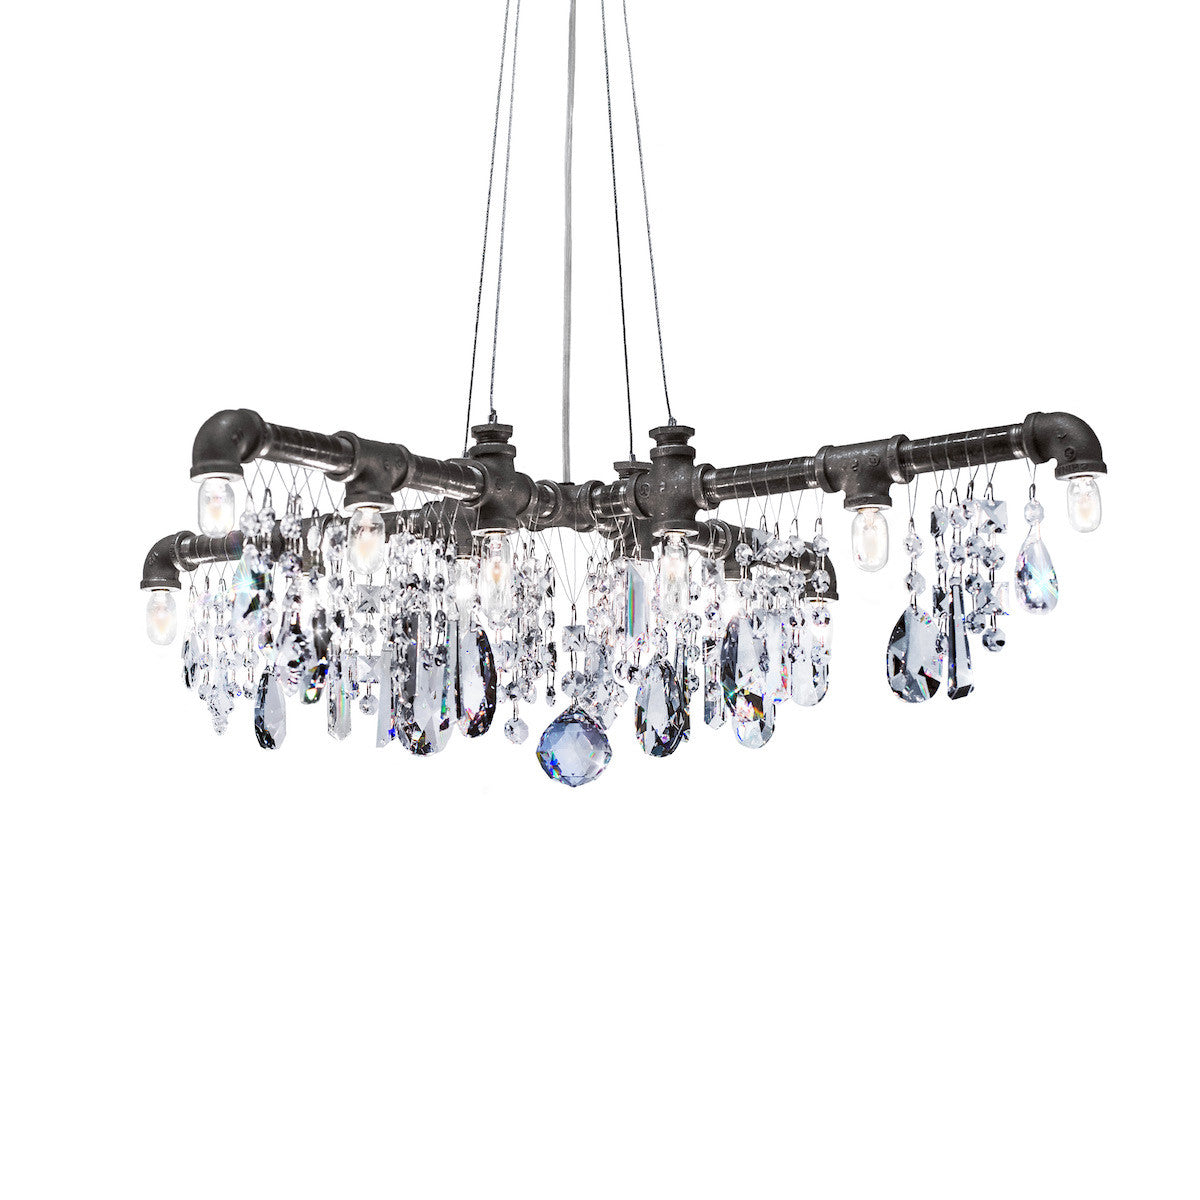 Tribeca X-Chandelier on CoolThingsToBuyOnline